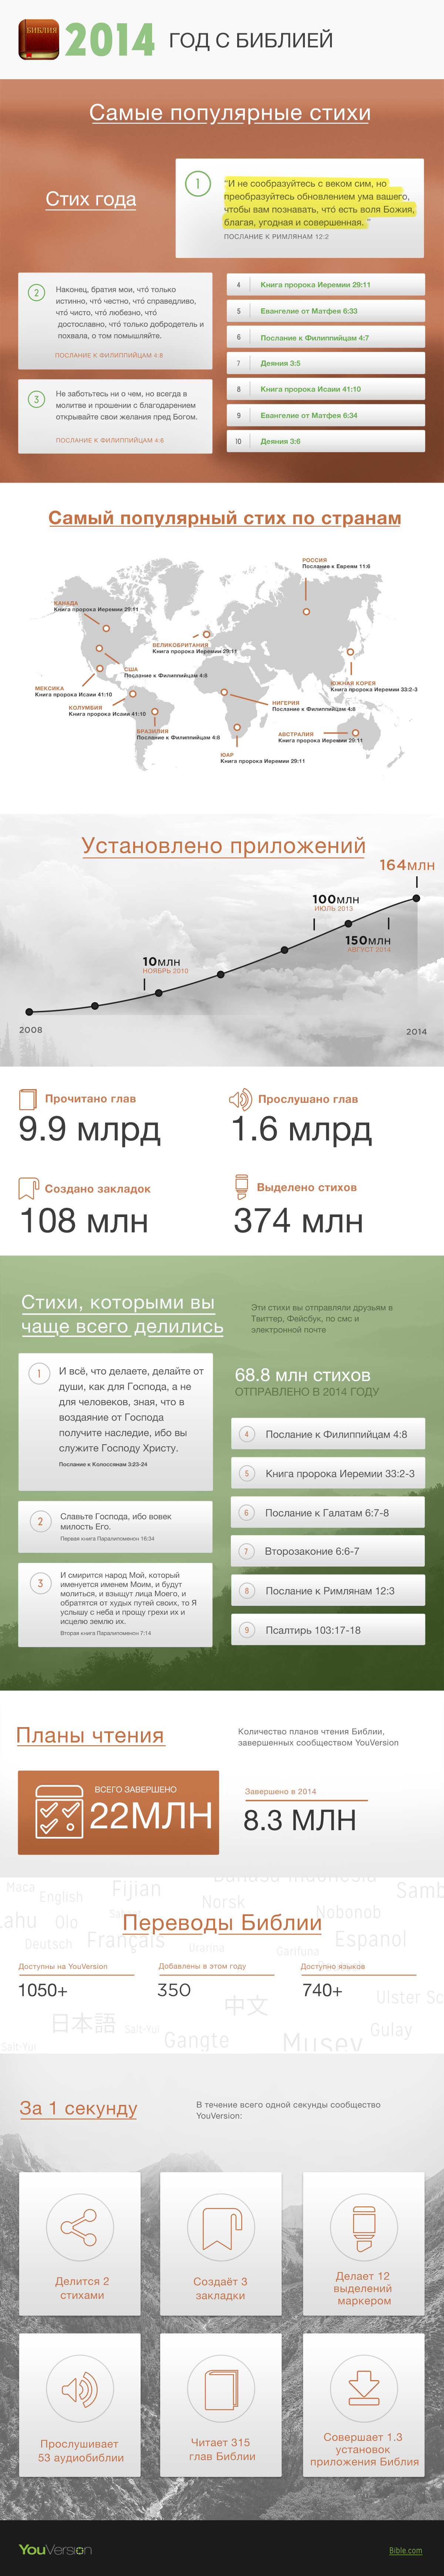 2014-Infographic-Russian